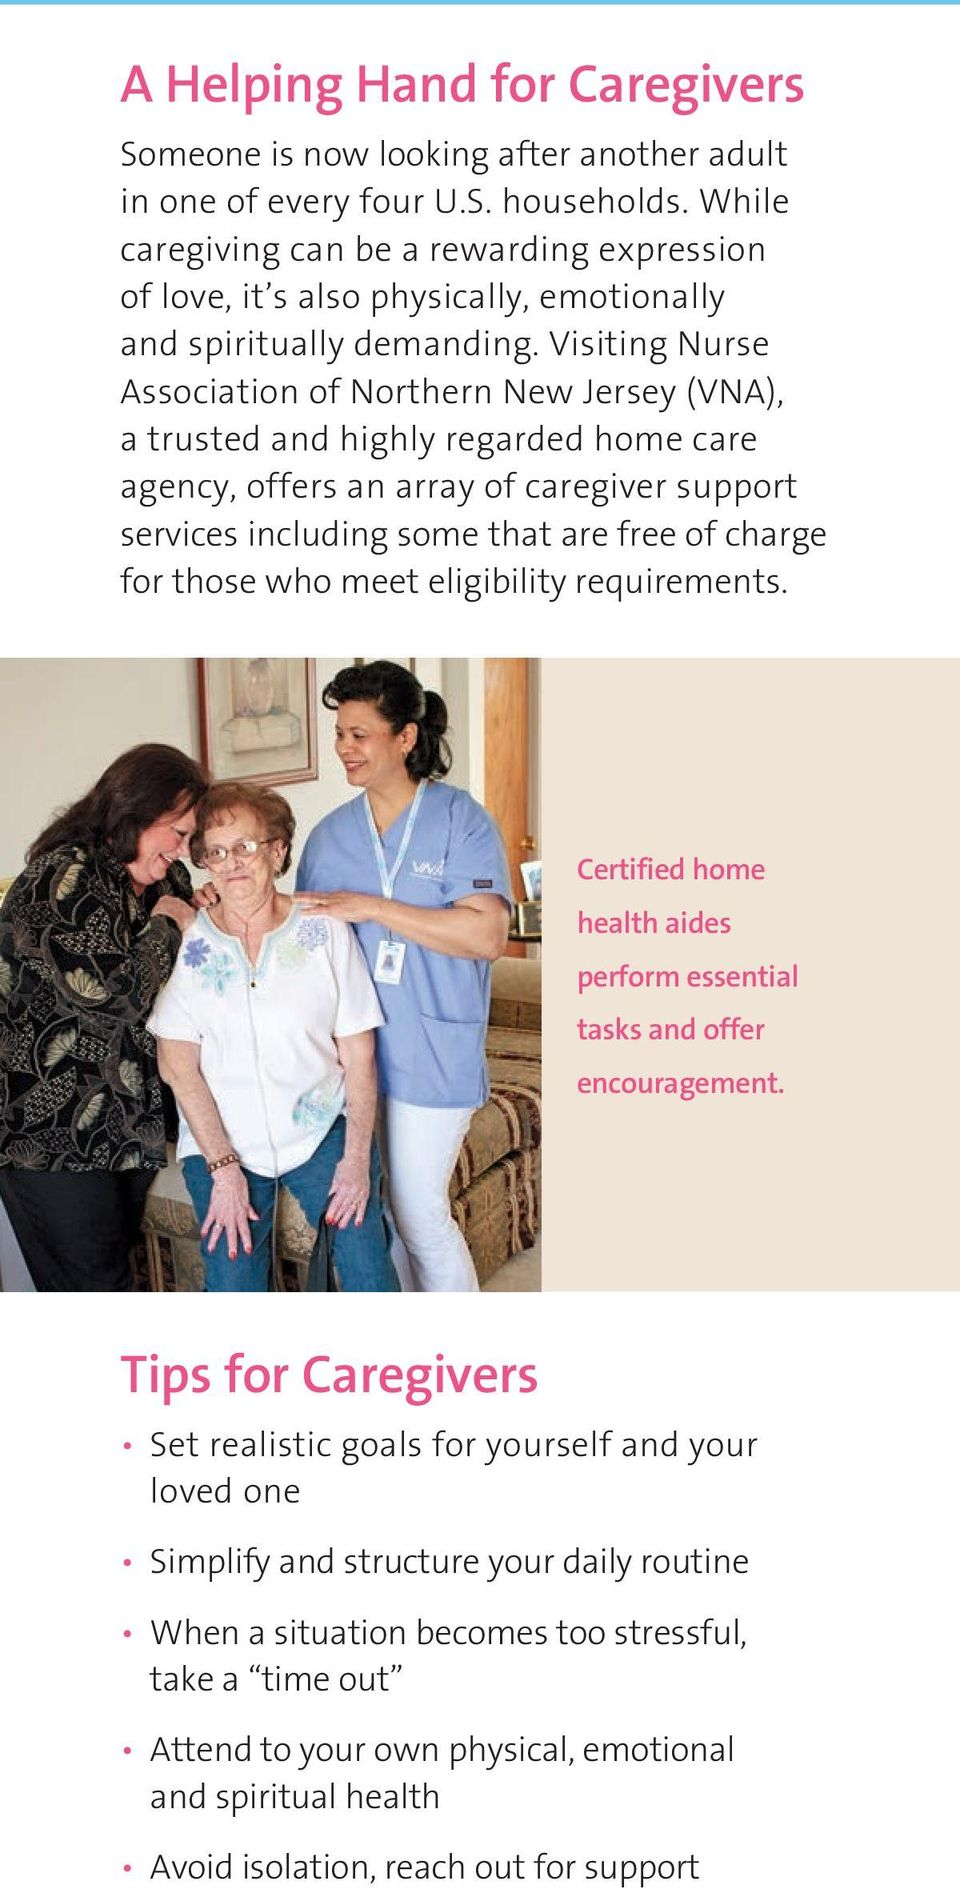 Visiting Nurse Association of Northern New Jersey (VNA), a trusted and highly regarded home care agency, offers an array of caregiver support services including some that are free of charge for those